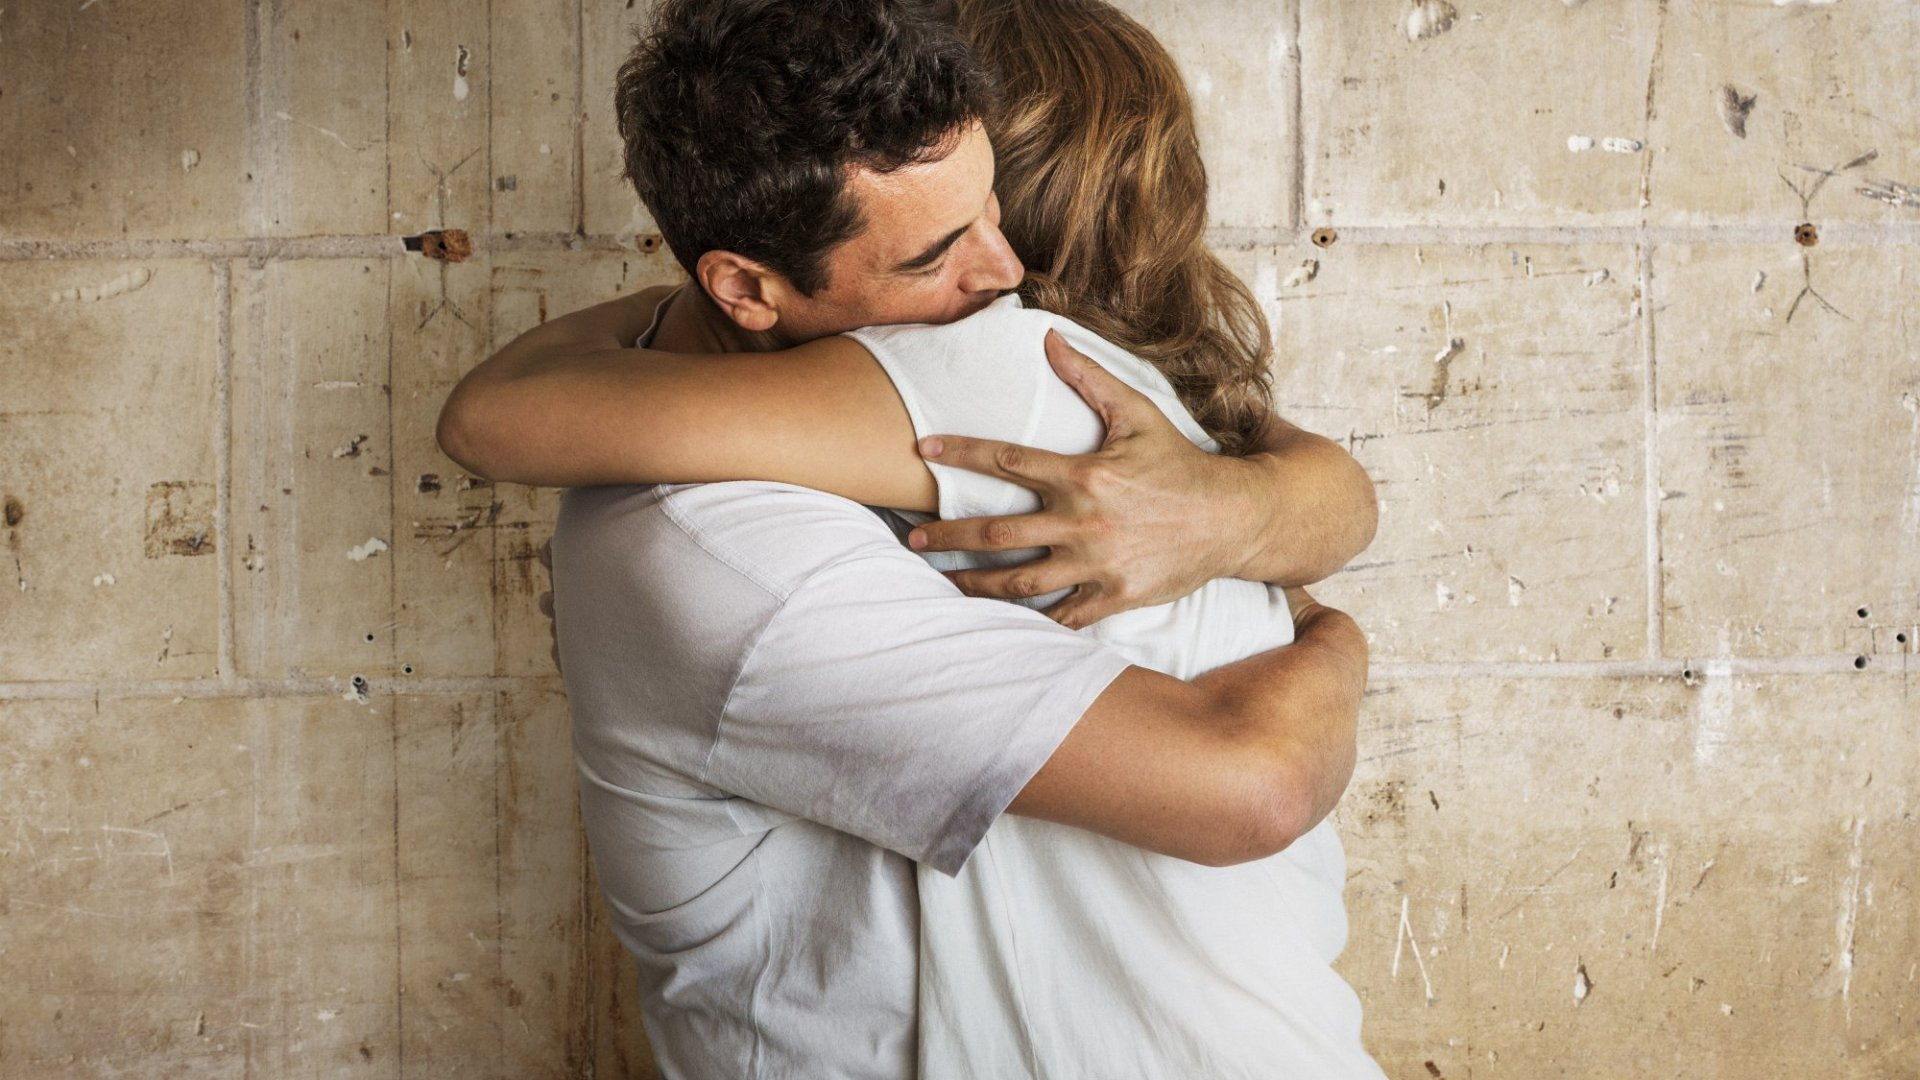 Forget Free Hugs. Now You Can Make $80 to $100 an Hour as a Professional Cuddler